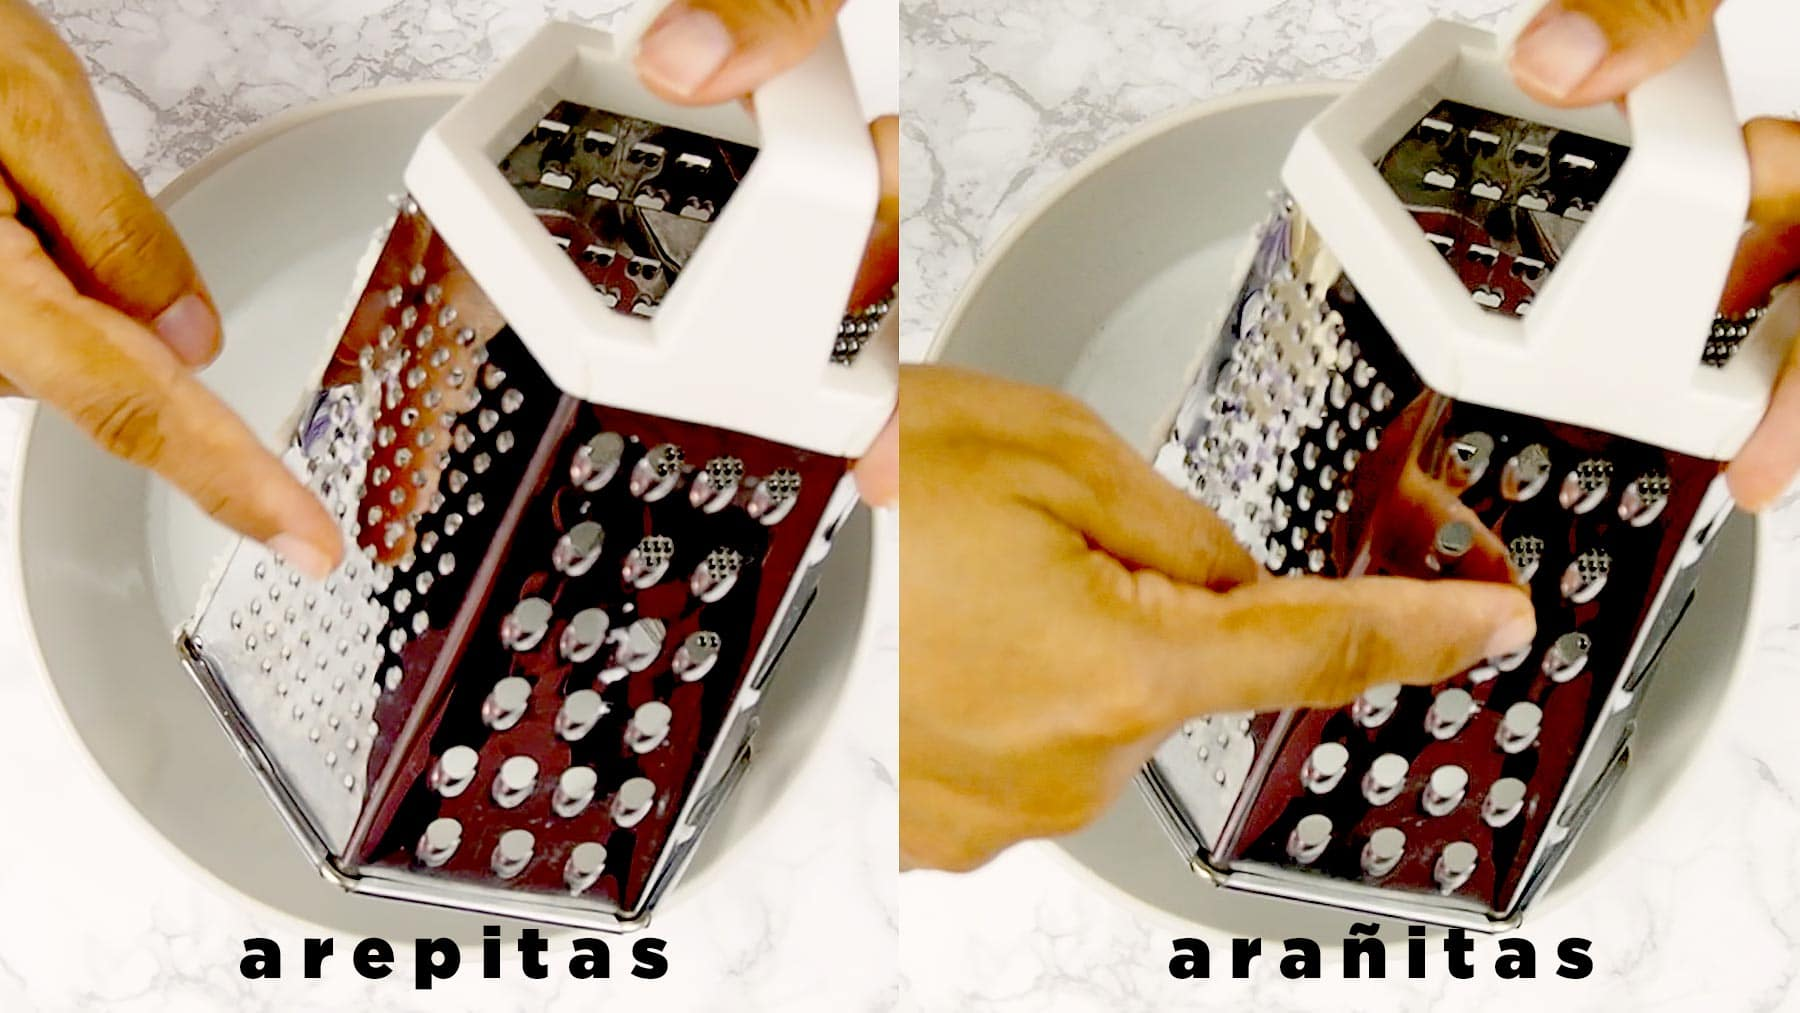 Sides of the grater